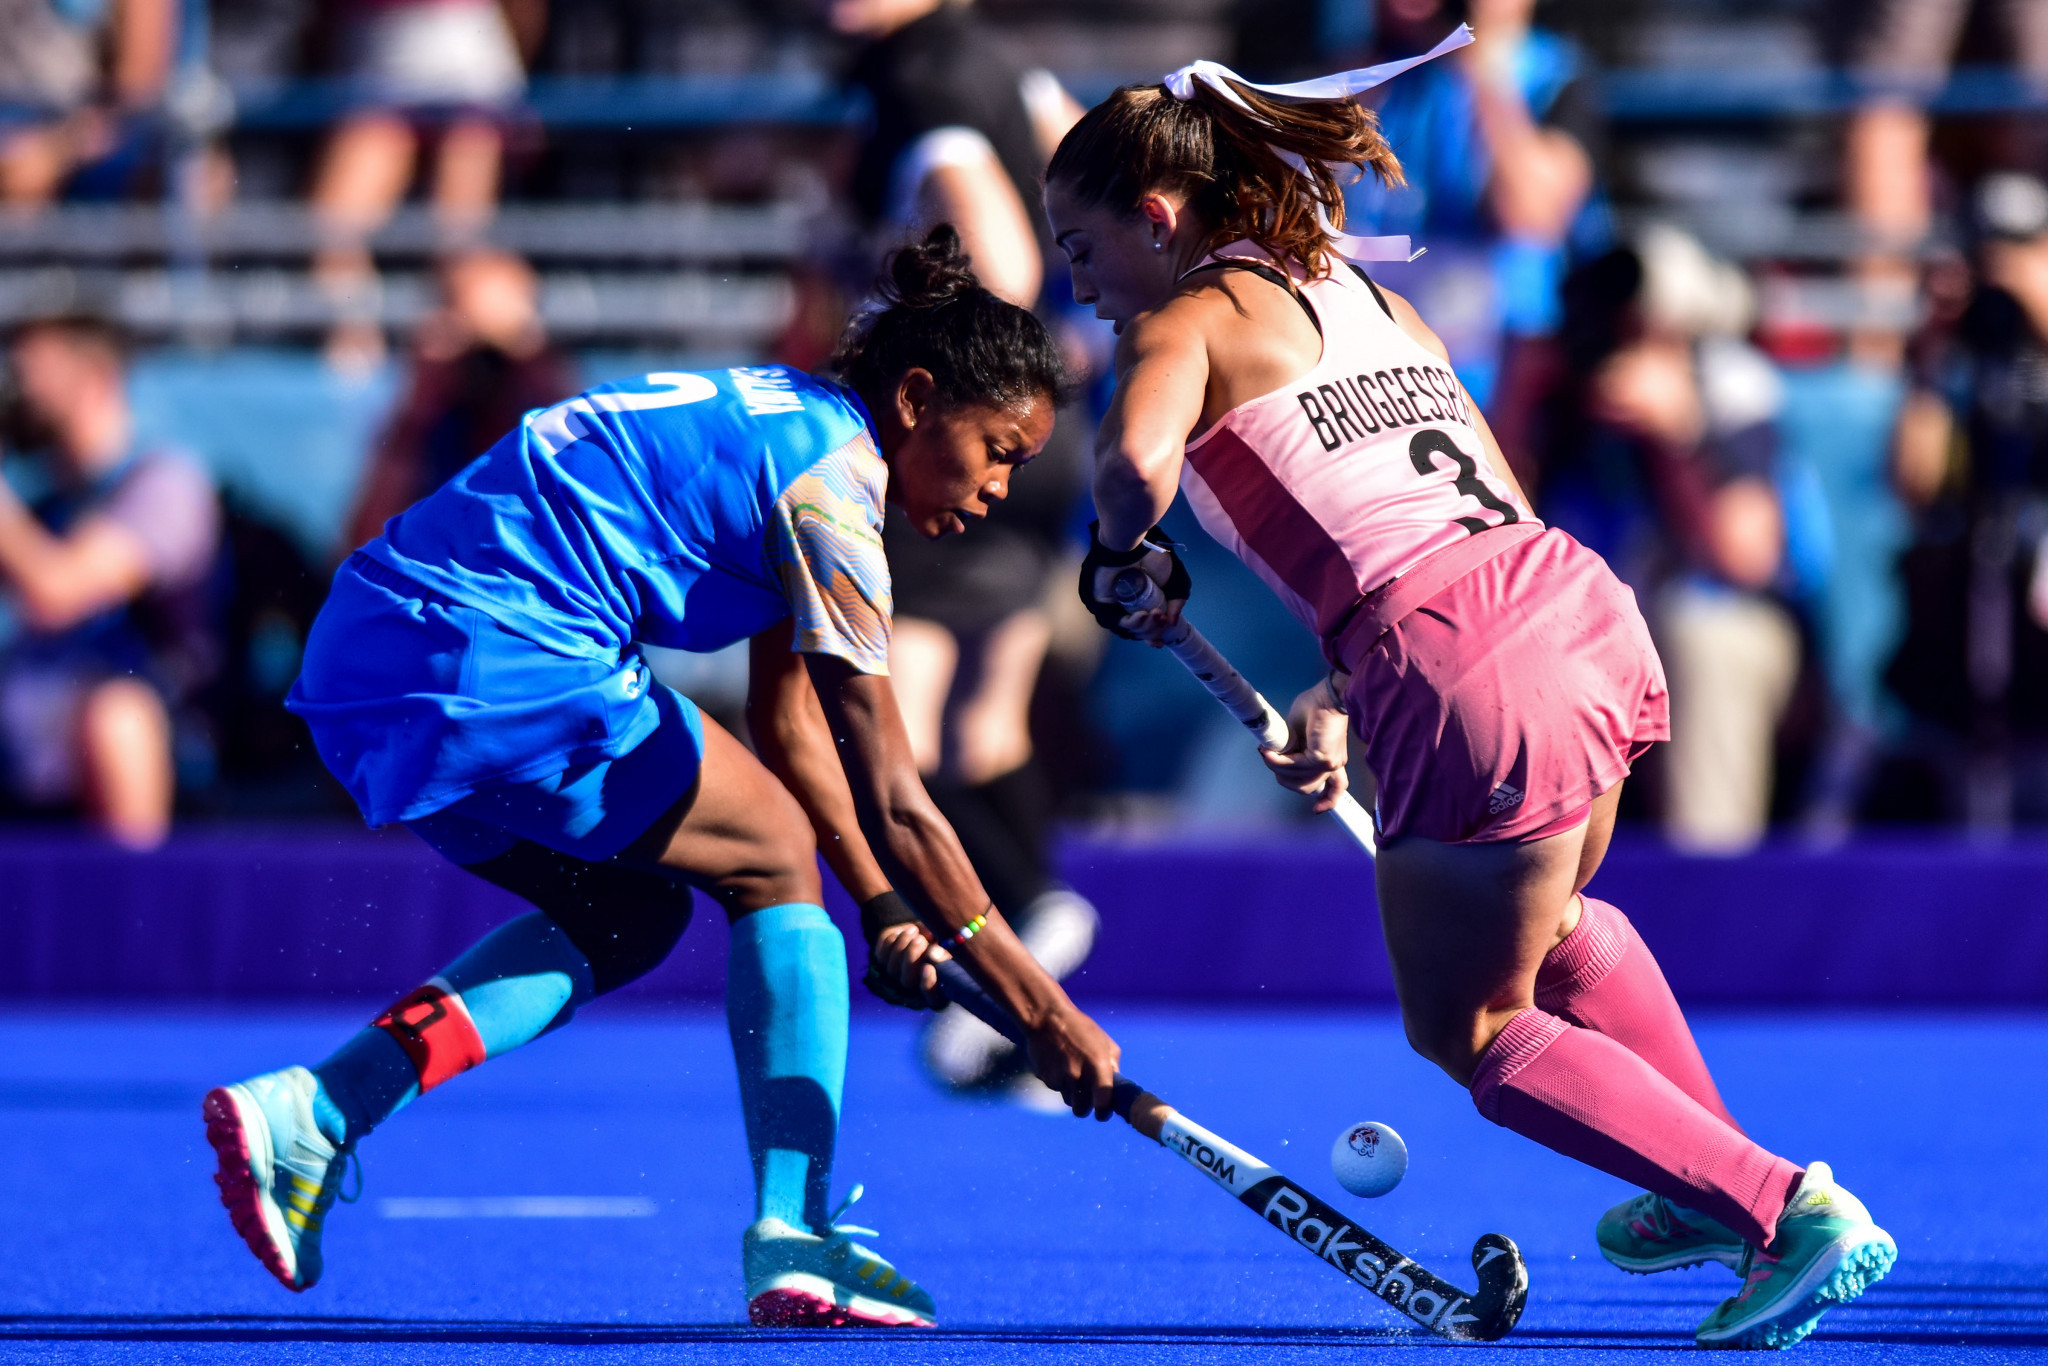 India women's hockey team in good shape for Tokyo 2020, Tete claims